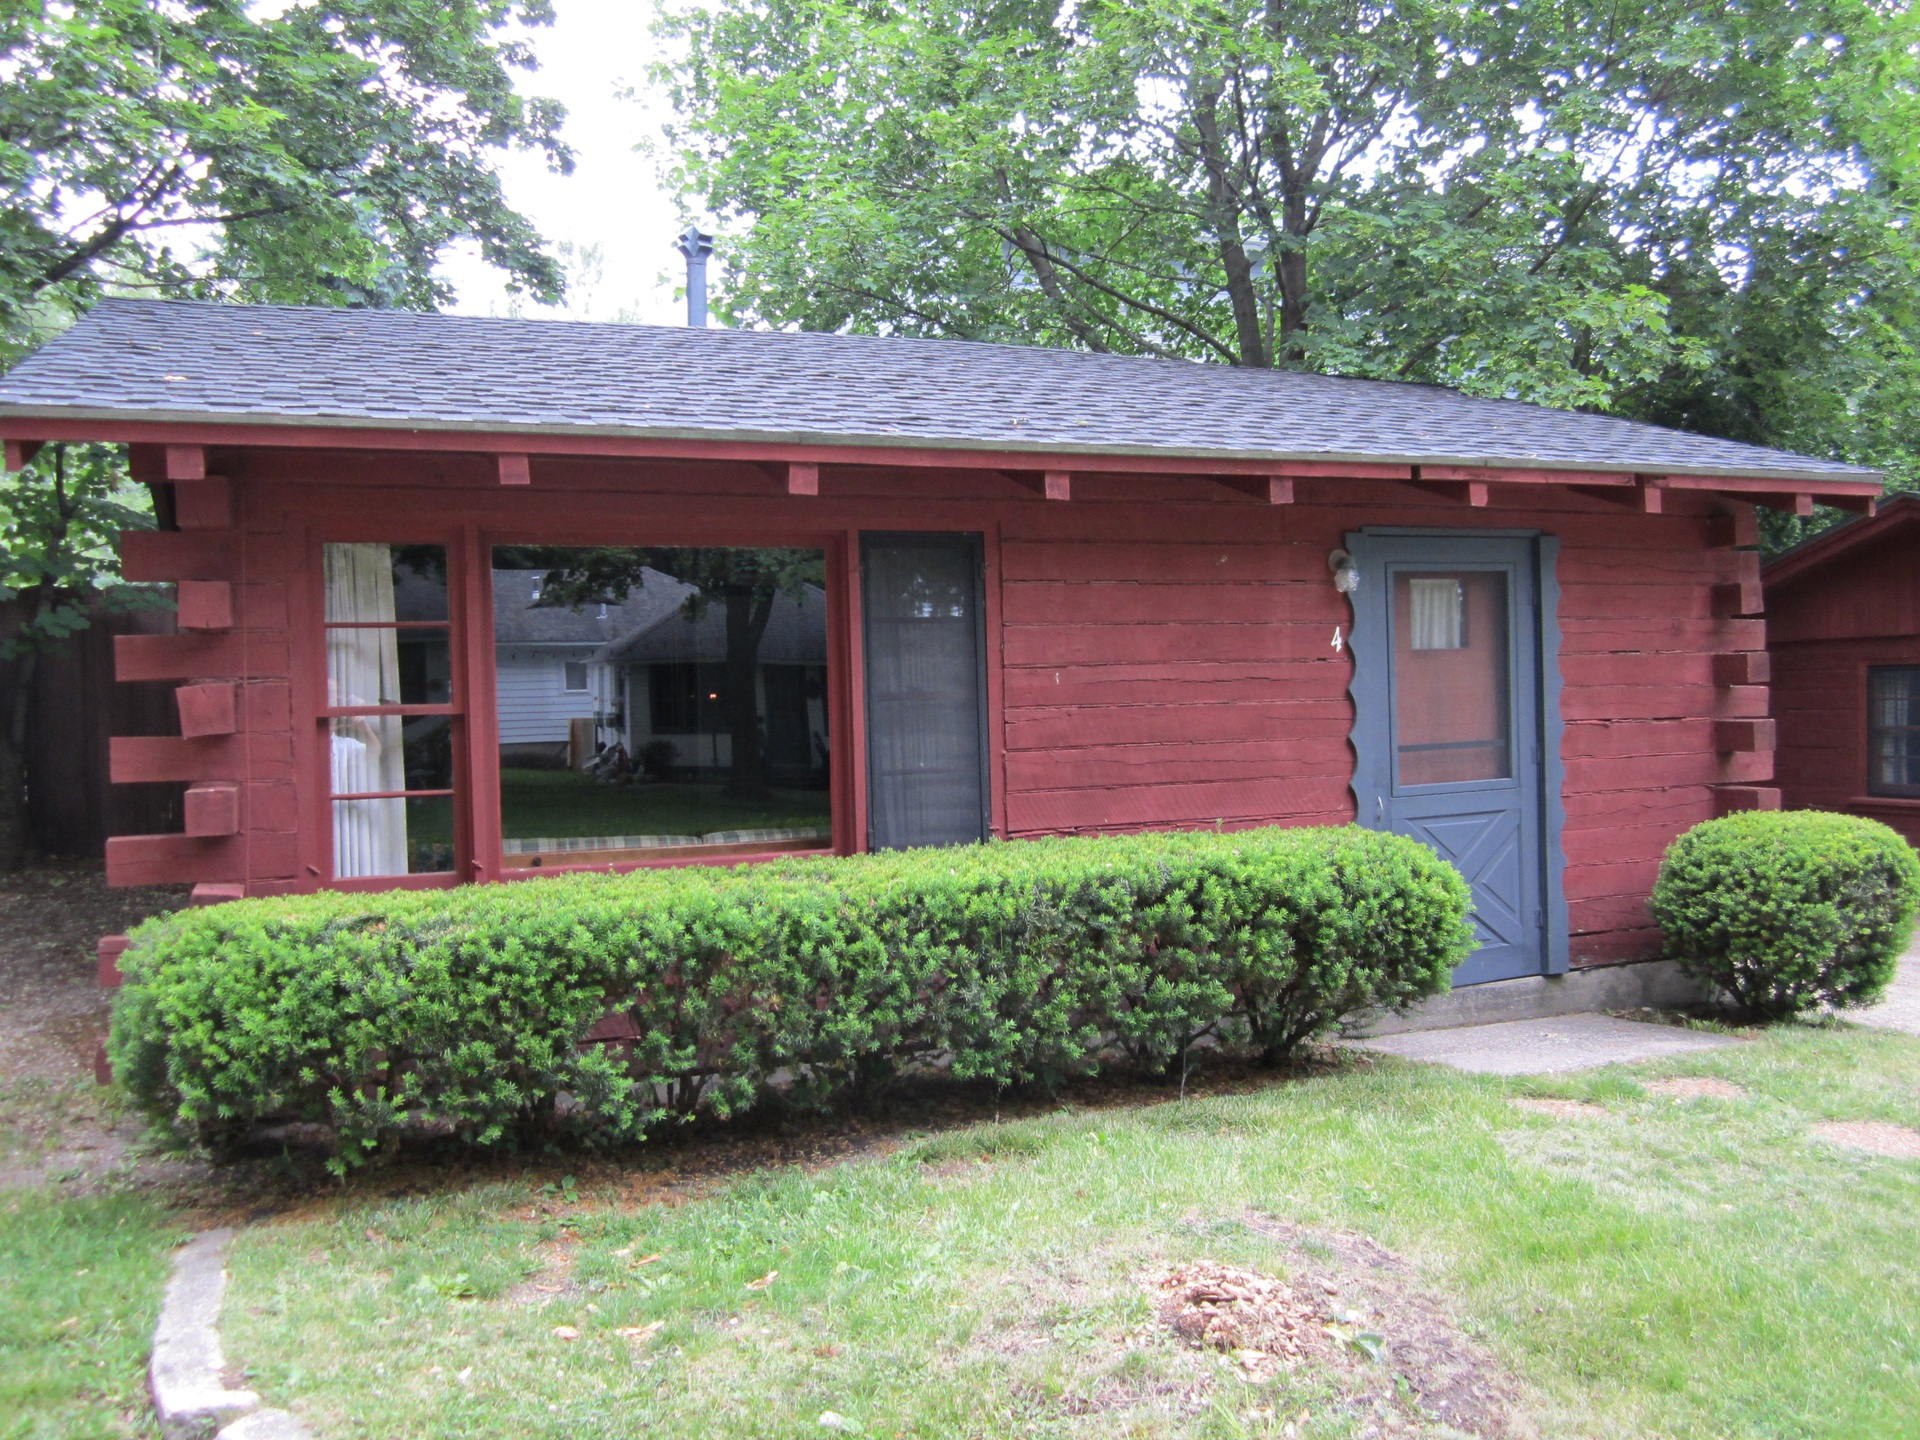 Typical cabin front view